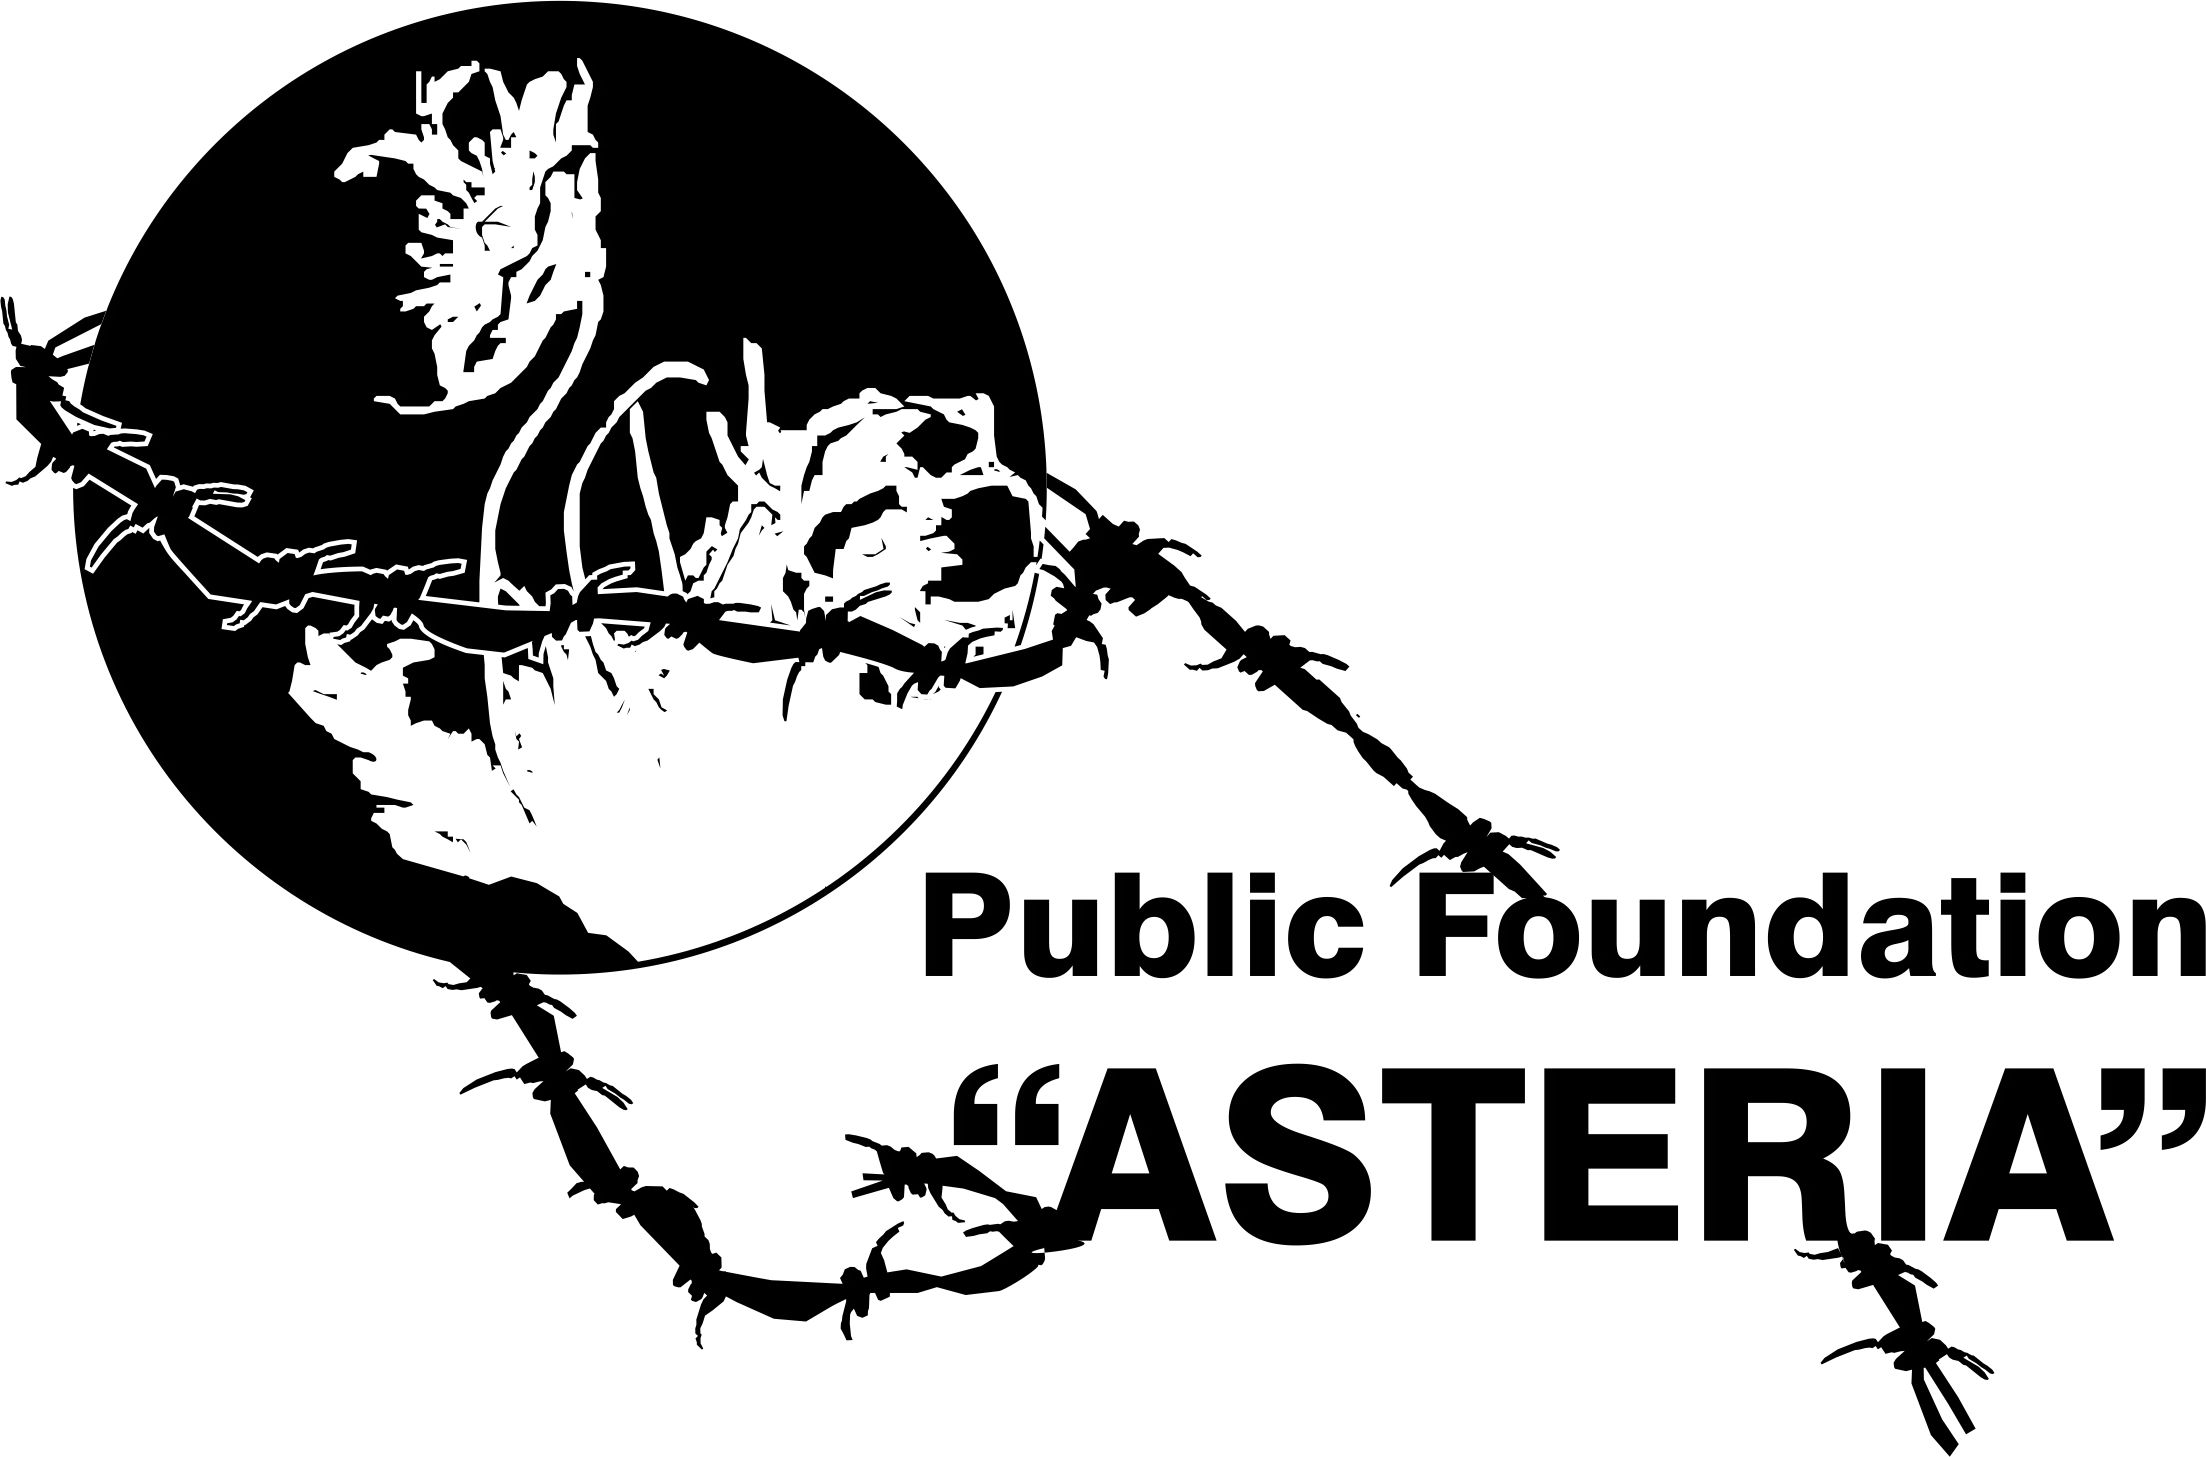 Asteria Public Foundation